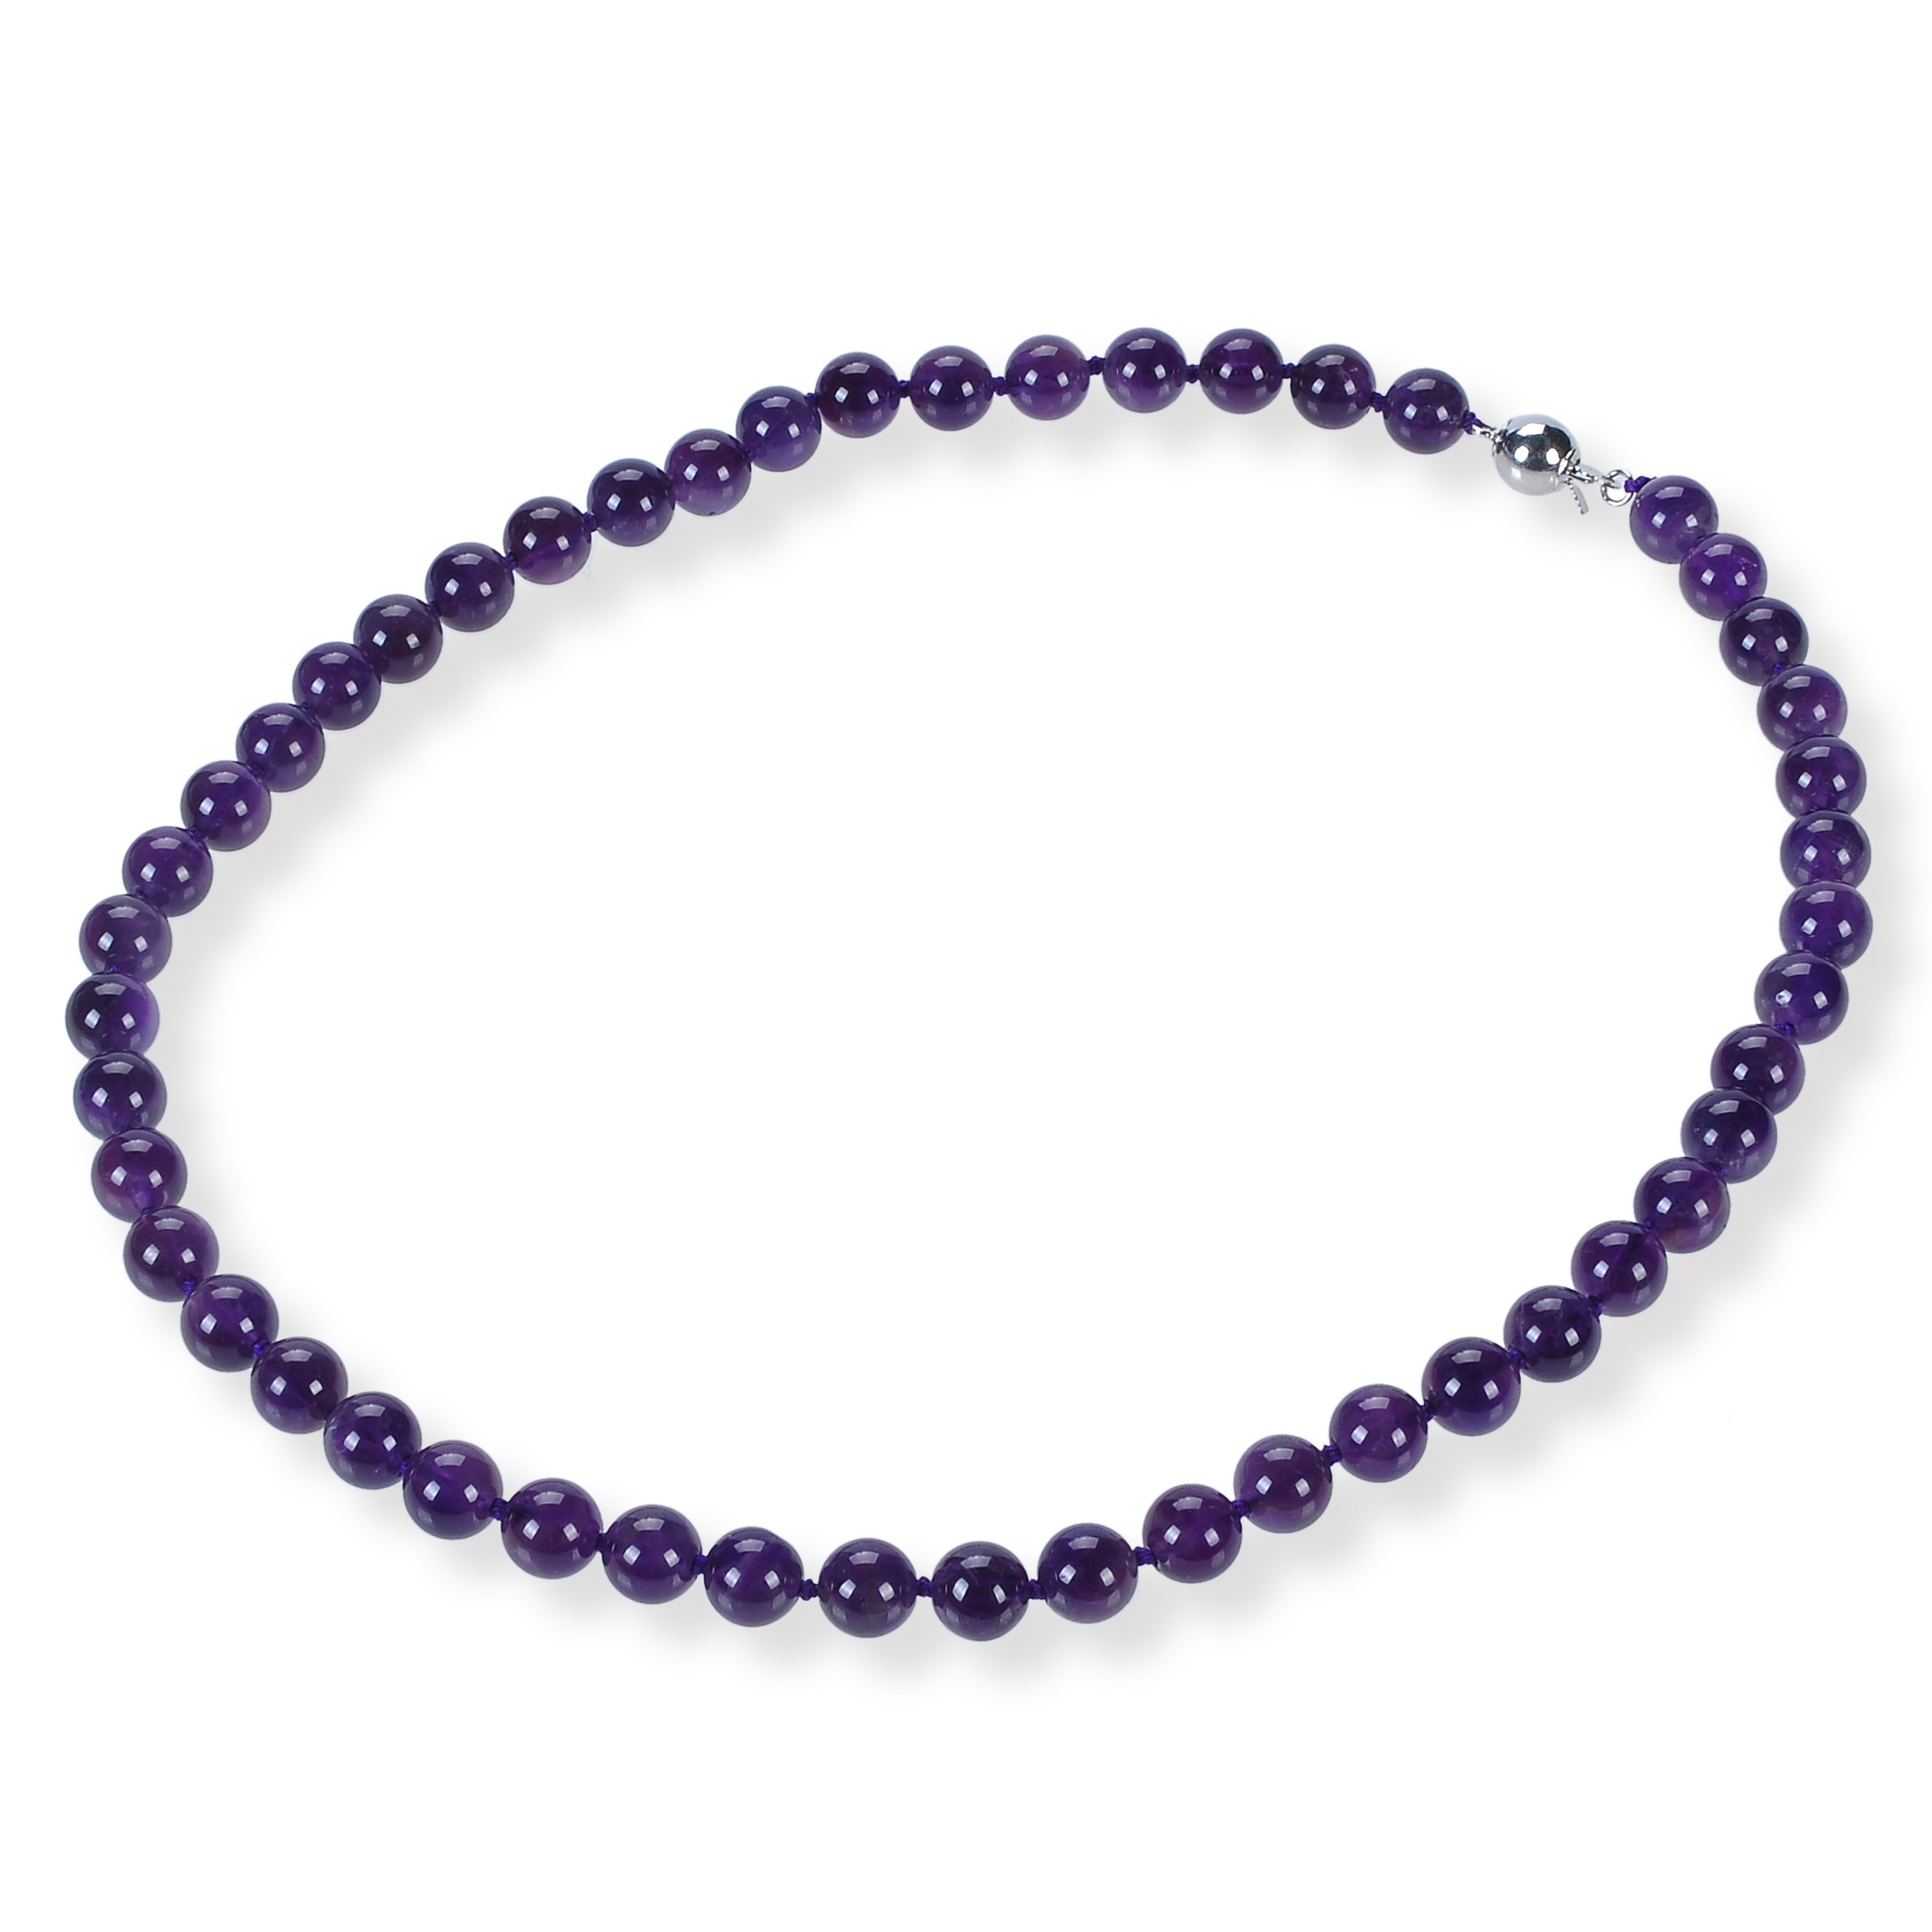 8.5 mm Round Natural Brazil Amethyst Strand Necklace -nk-am9